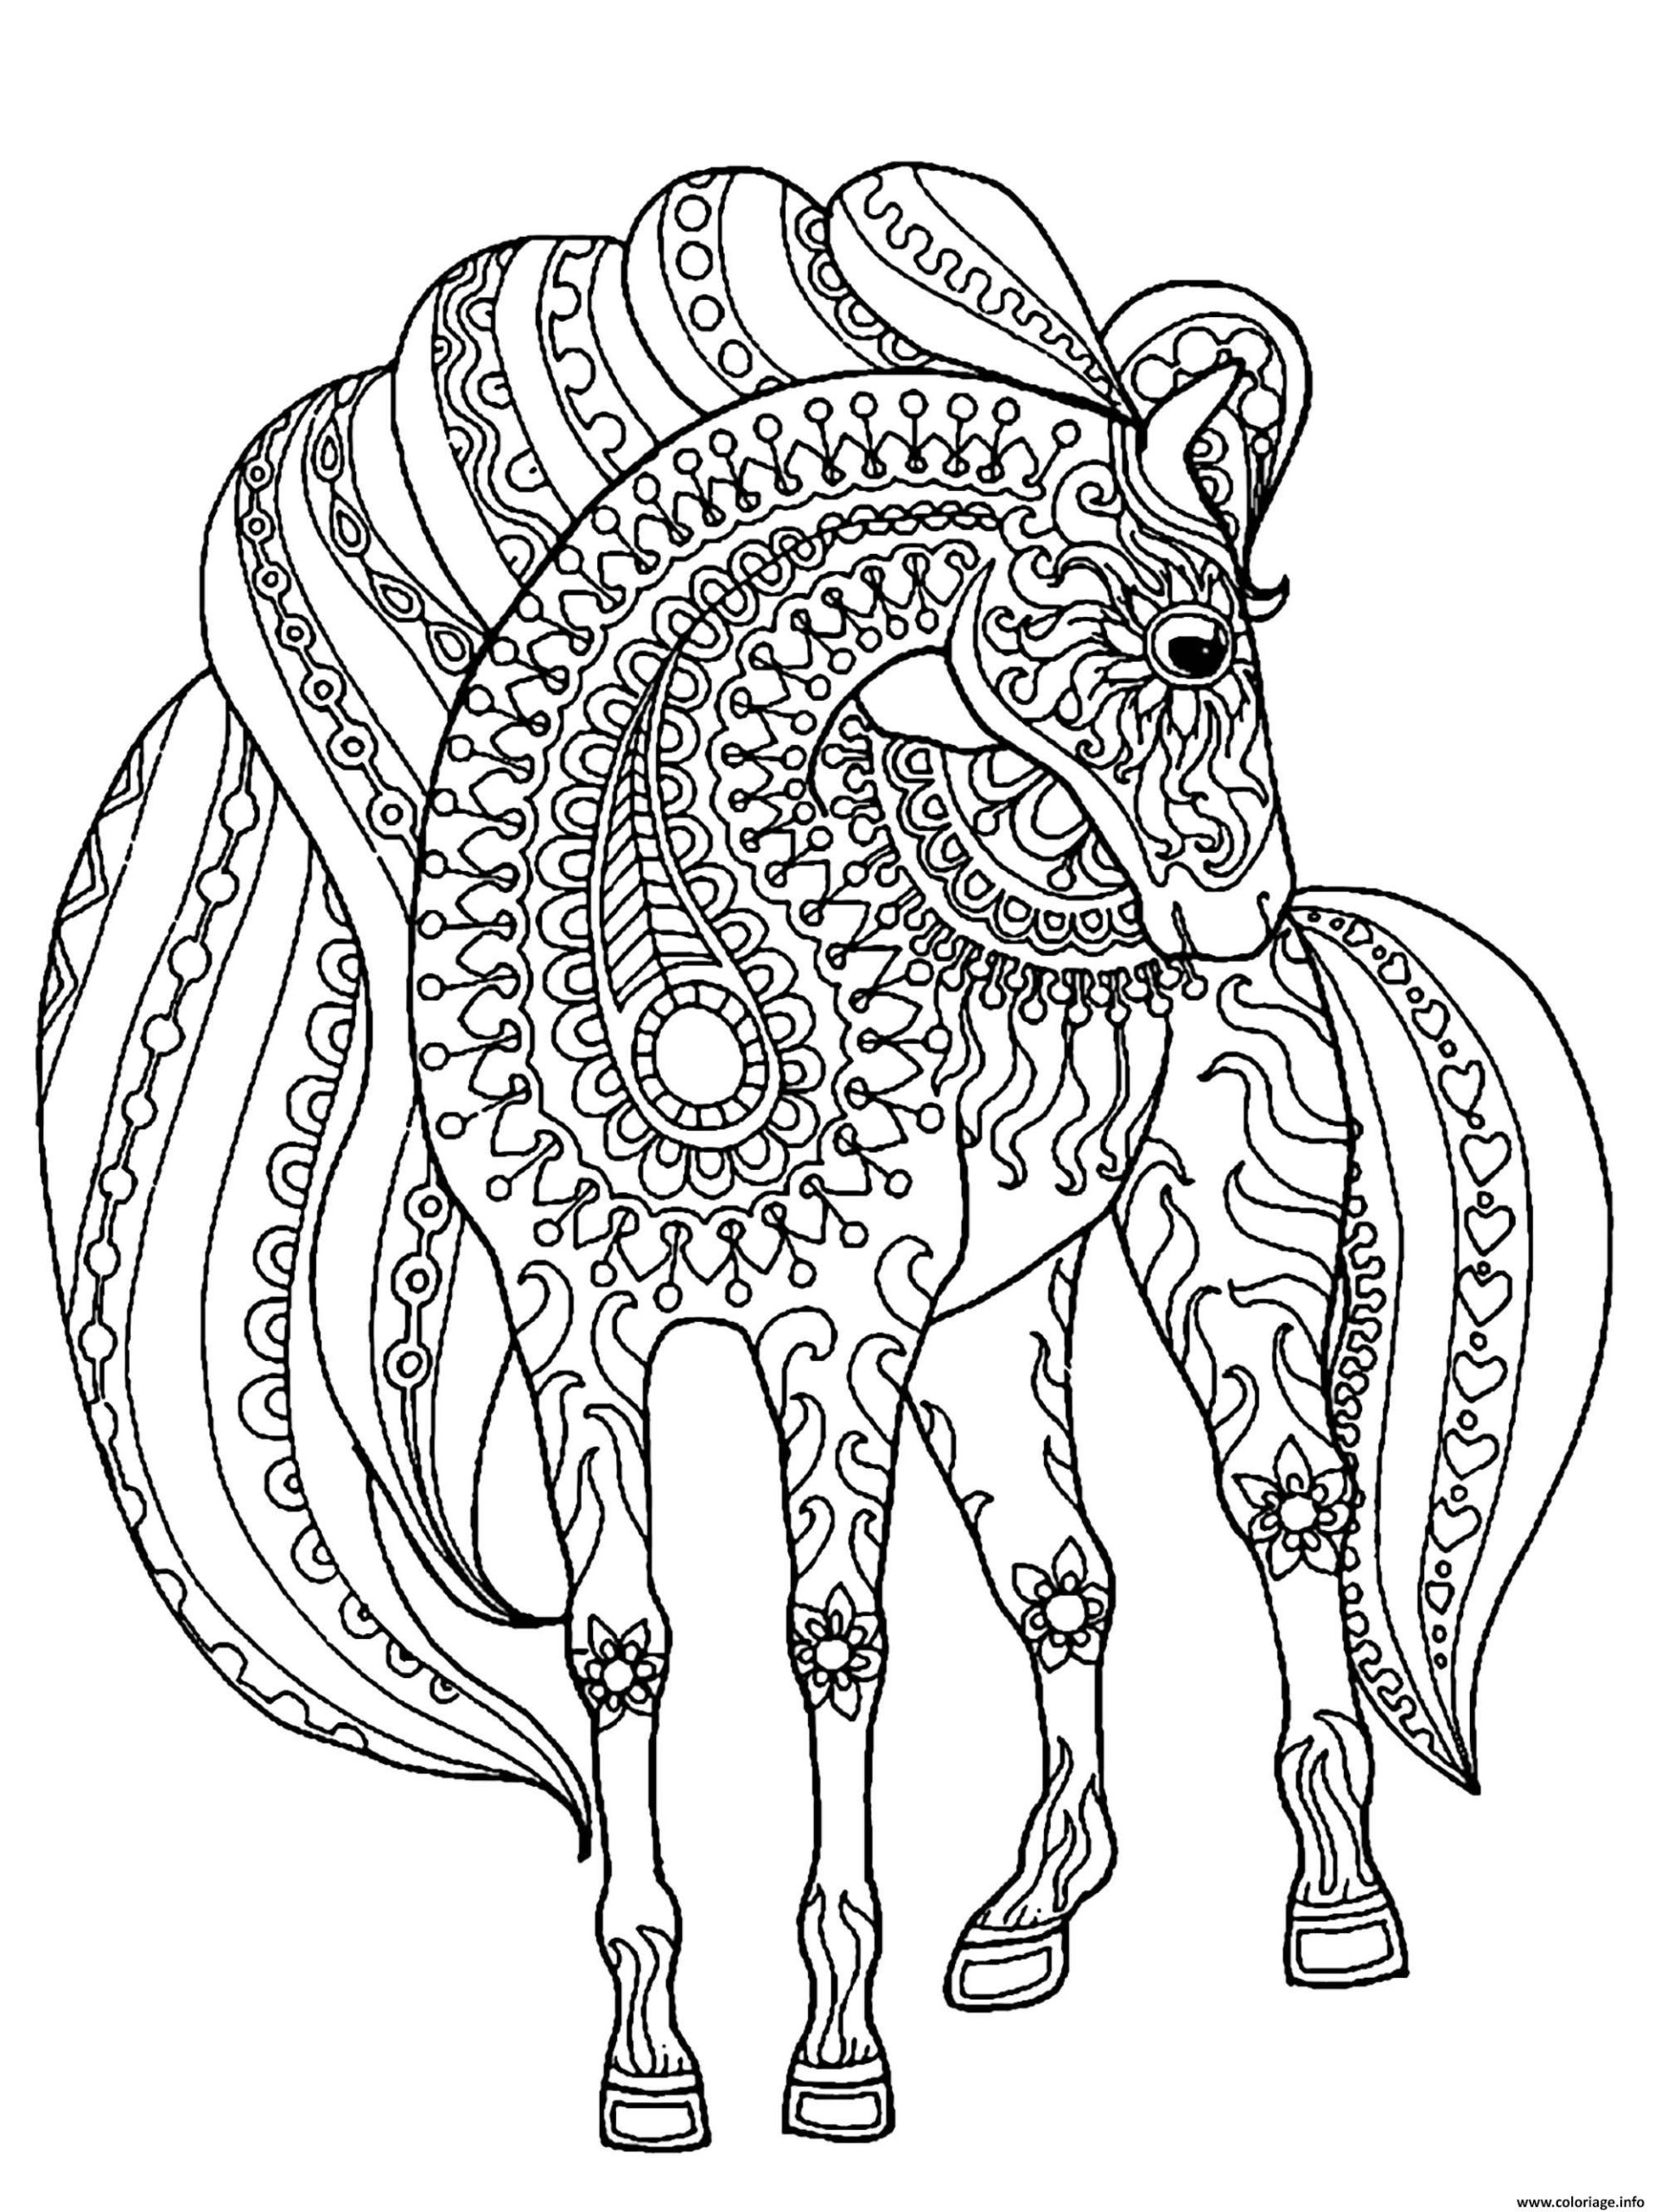 Dessin De Cheval Easy | Coloriage Kids serapportantà Image De Cheval A Colorier